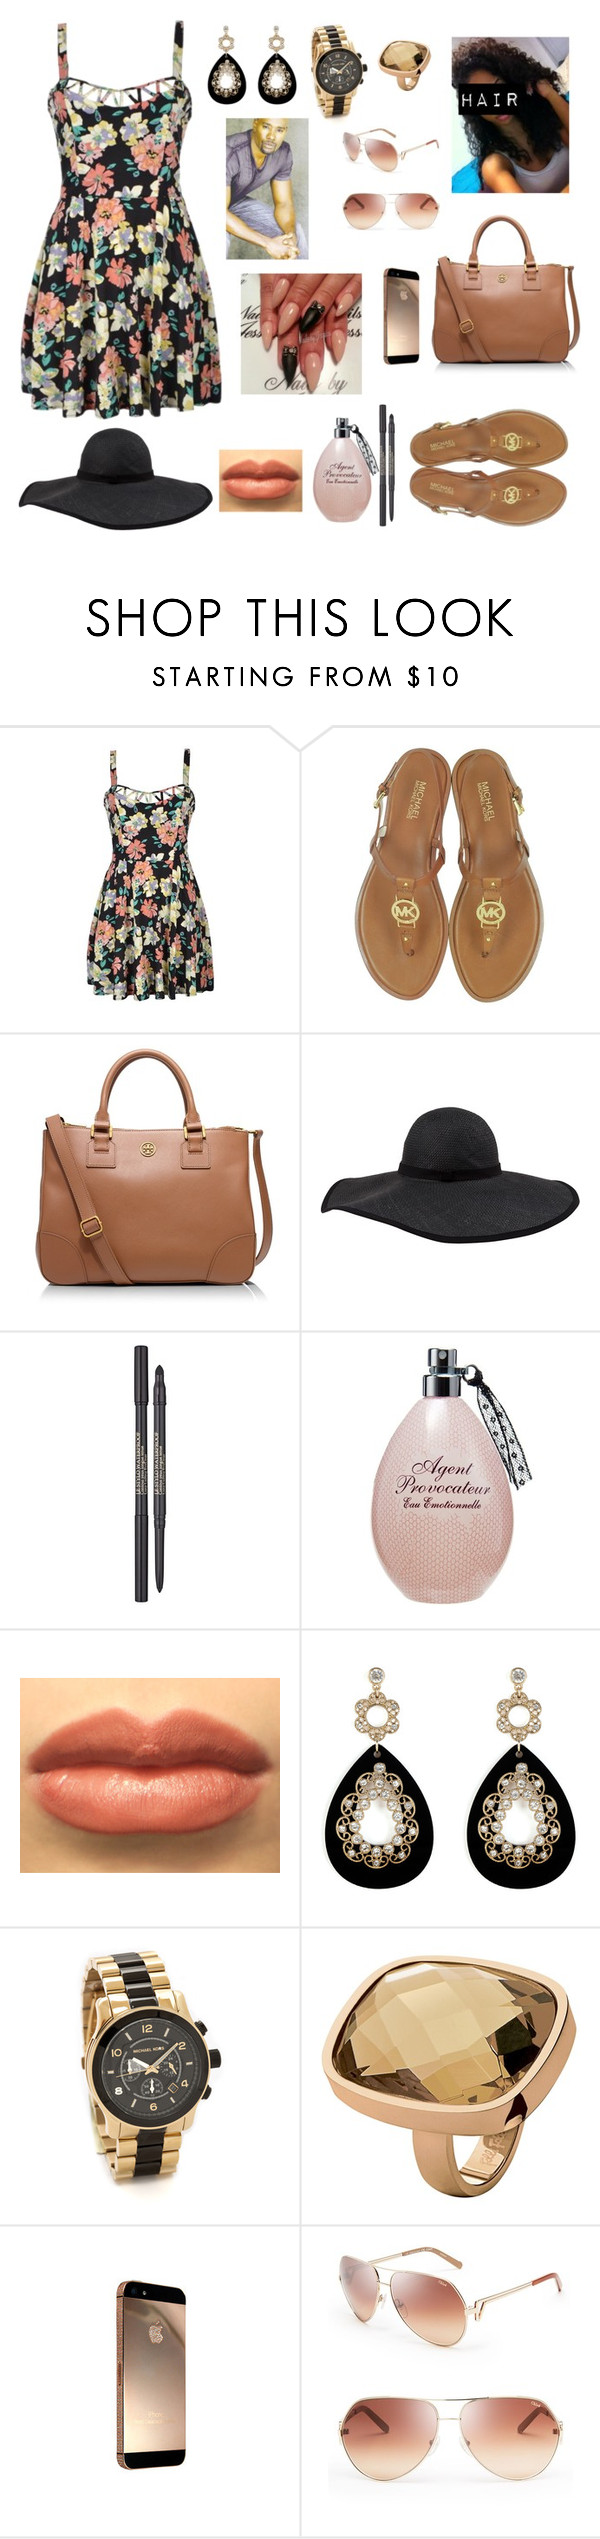 """""""Sunday Is My Favorite Sunny Day ;D #GoingToChurchWithUncMomo #GoodVibes #HaveANiceDay"""" by cissylion ❤ liked on Polyvore featuring мода, Michael Kors, Tory Burch, Frette, Lancôme, Agent Provocateur, Oasis, Folli Follie и Chloé"""